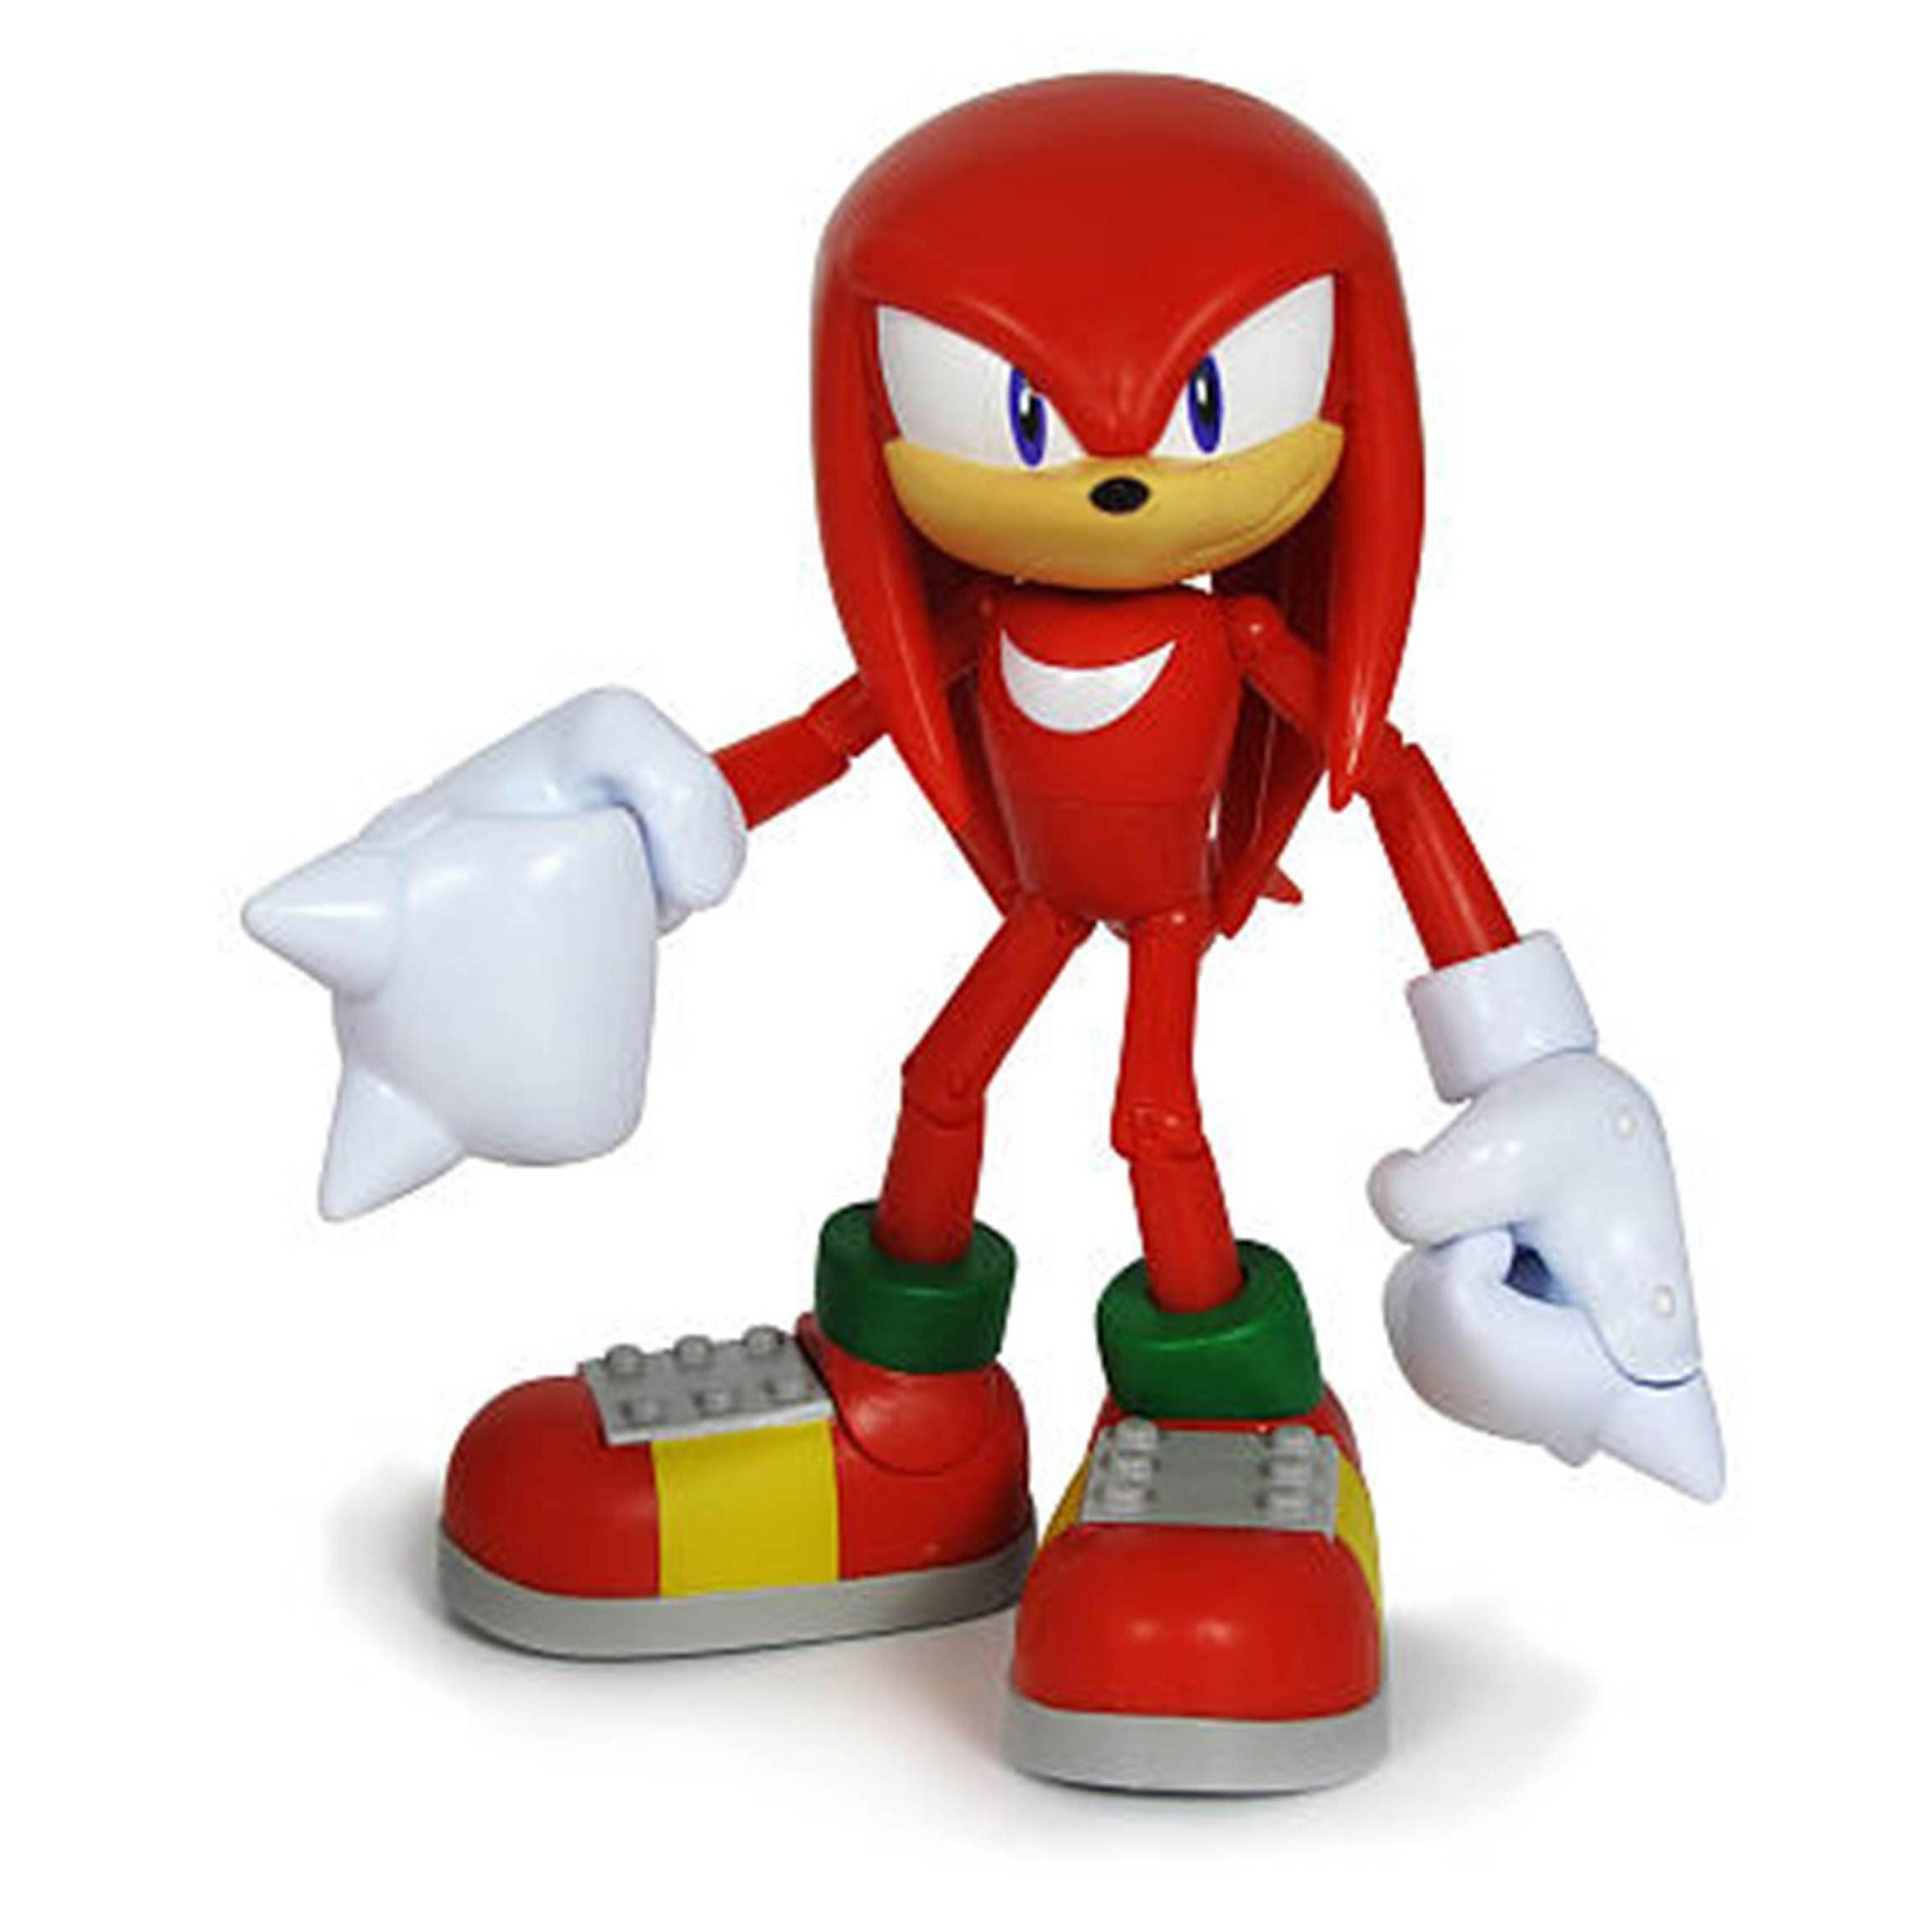 Kids Play With Sonic Exe Toys And Super Sonic Exe Toys: Amazon.com: Sonic The Hedgehog 3.5 Inch Action Figure